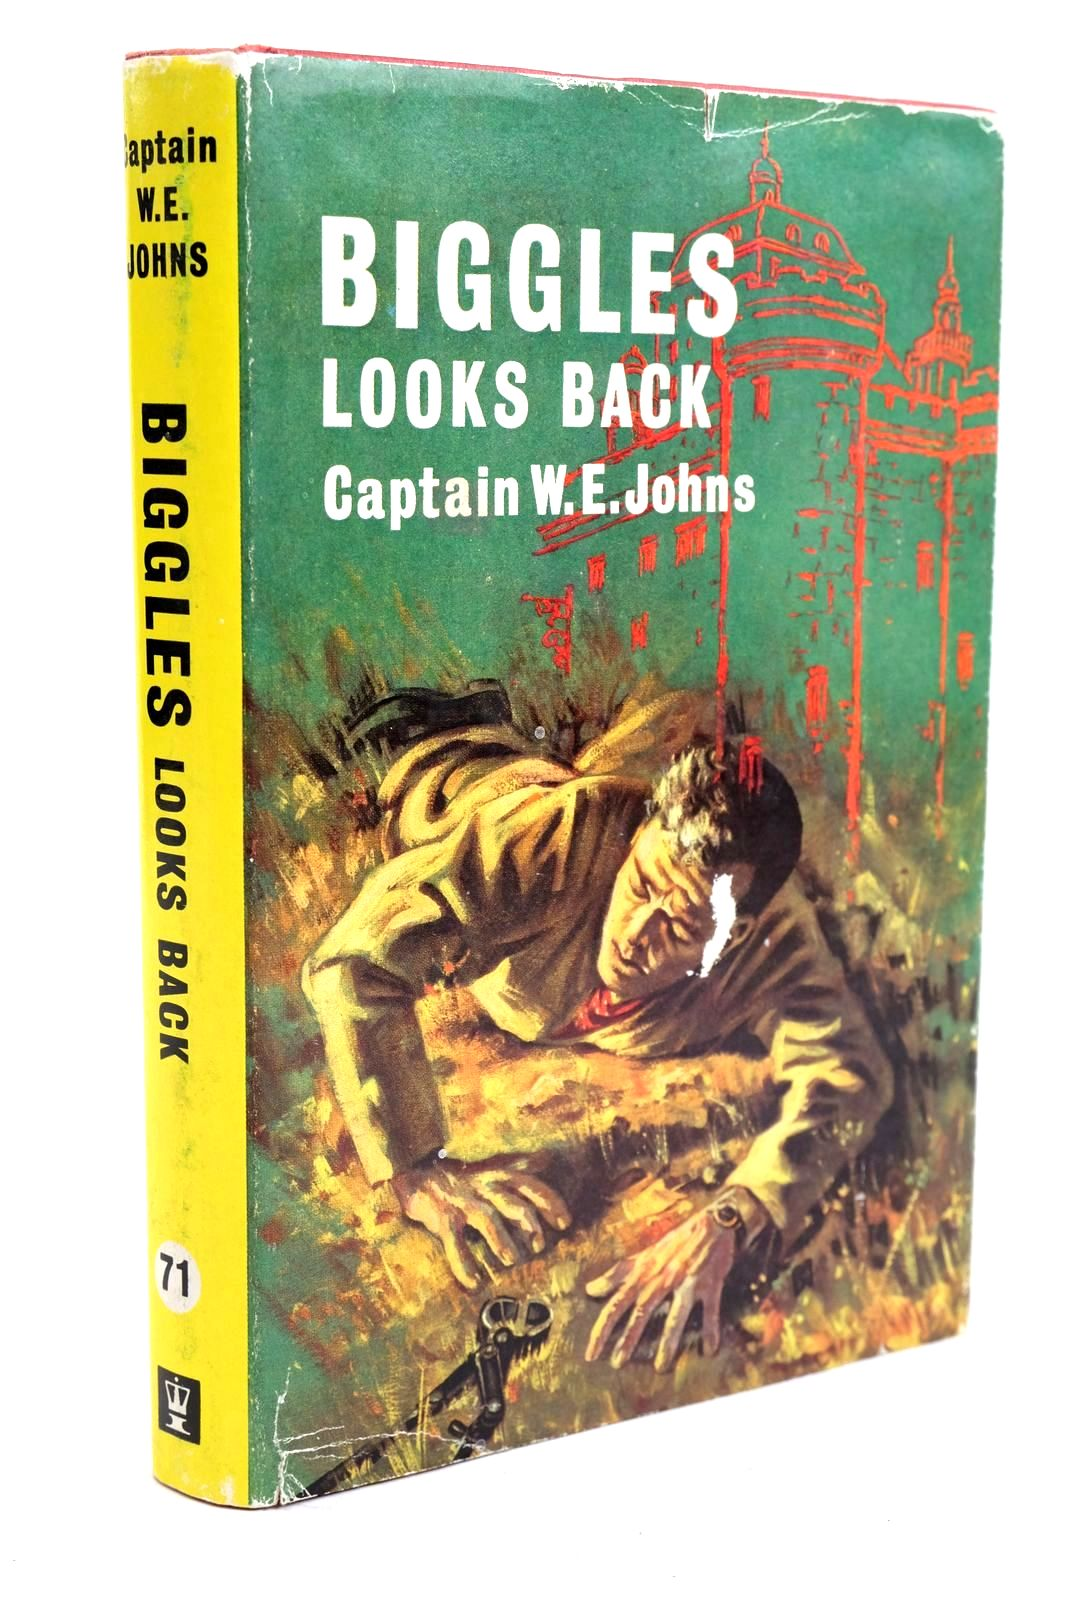 Photo of BIGGLES LOOKS BACK written by Johns, W.E. illustrated by Stead,  published by Hodder & Stoughton (STOCK CODE: 1320553)  for sale by Stella & Rose's Books